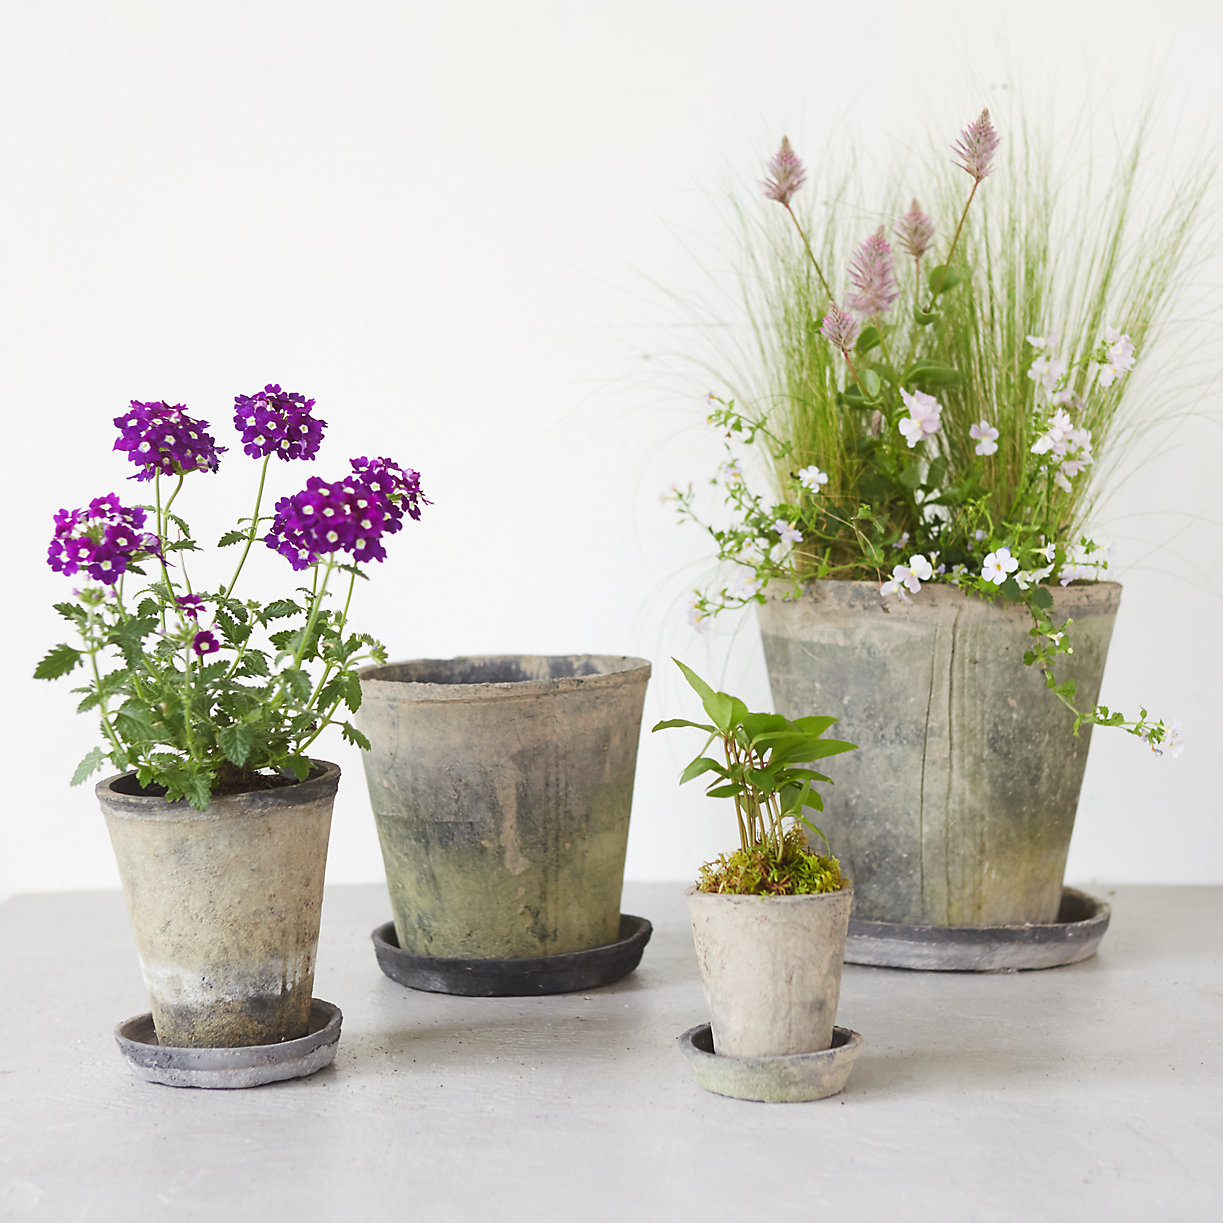 Earth fired clay pots from Terrain